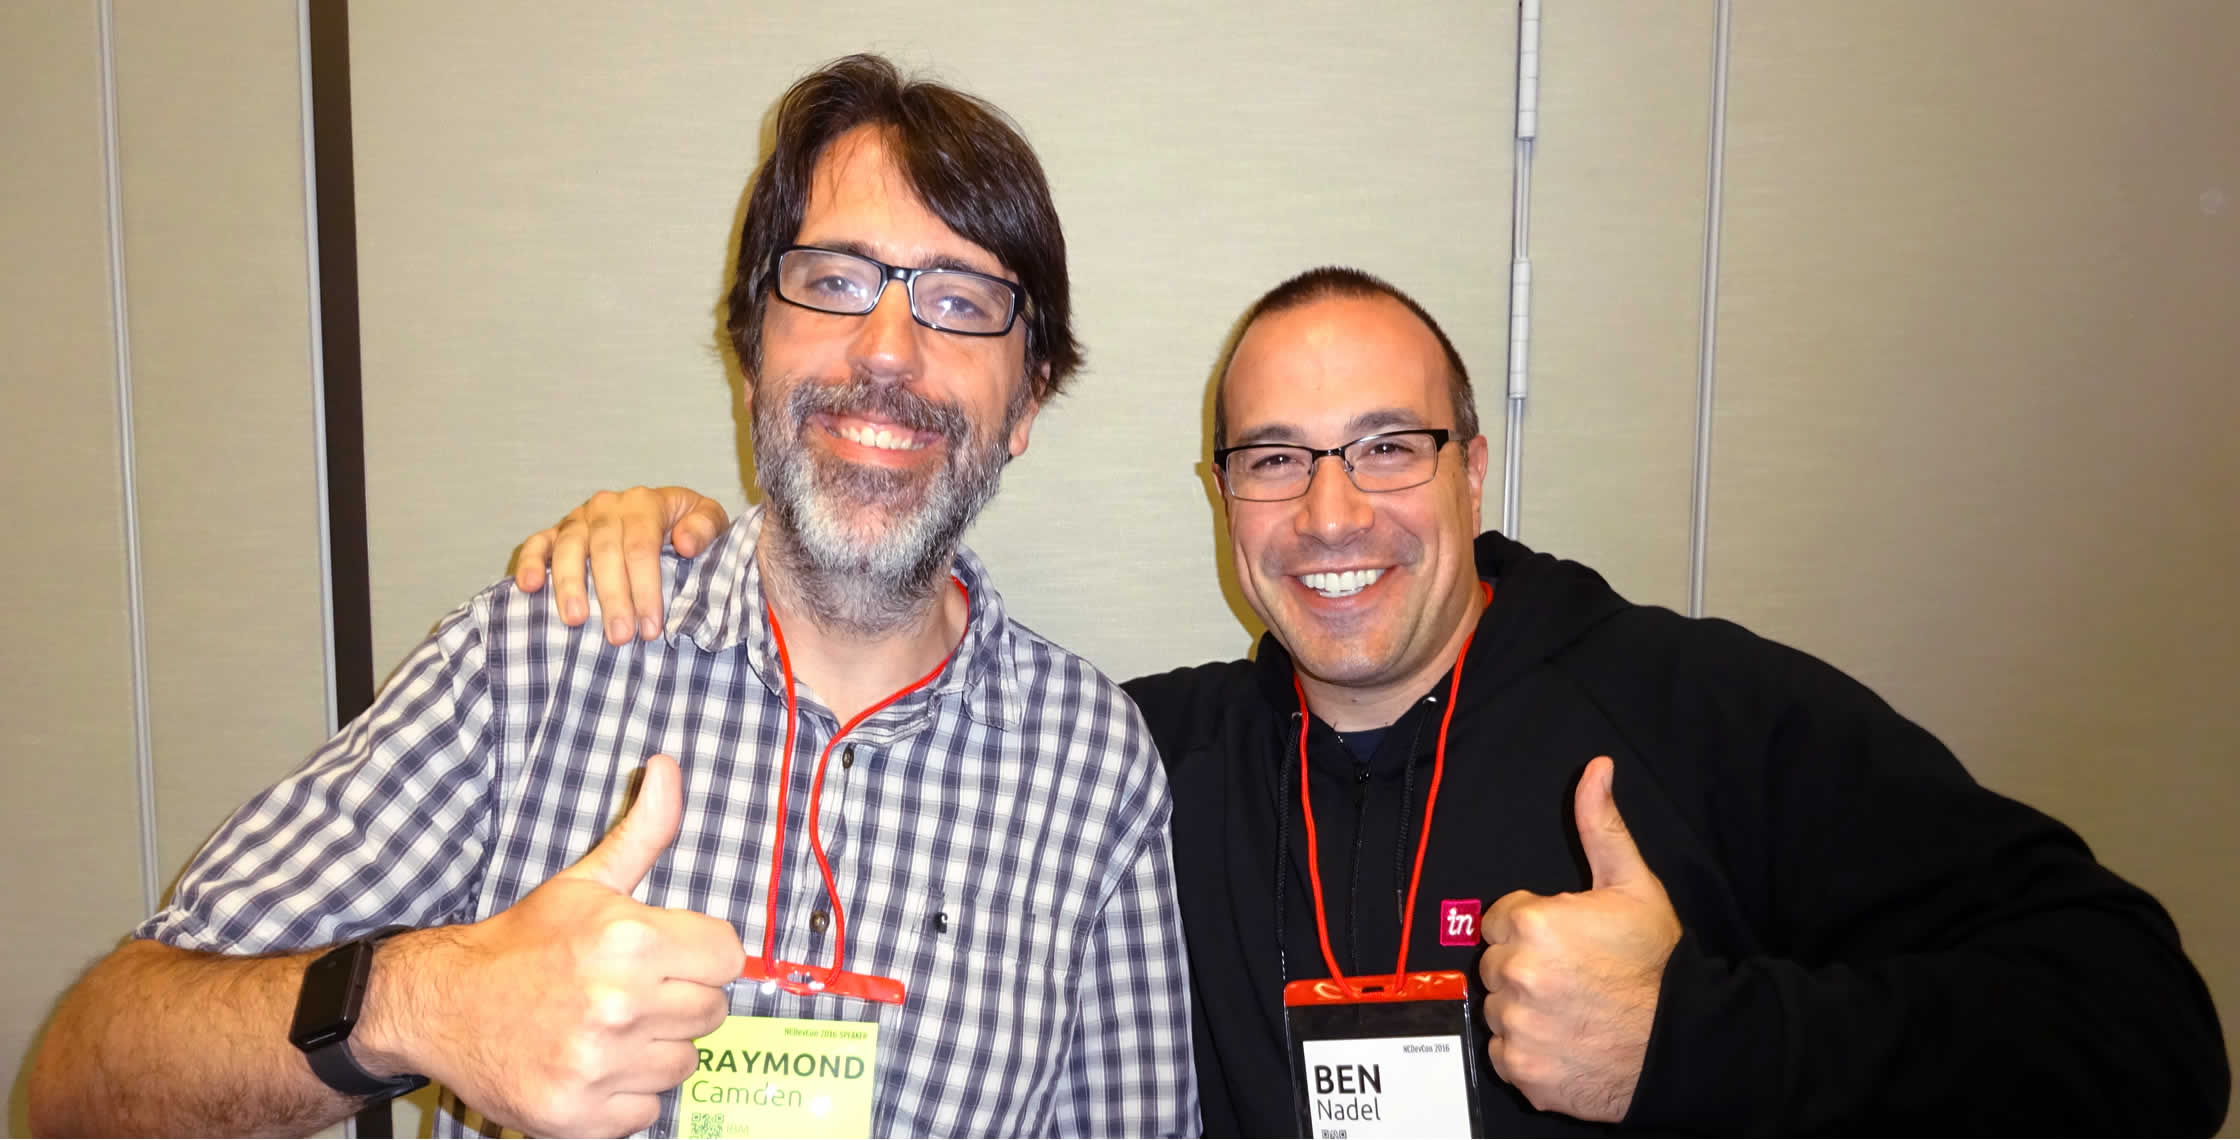 Ben Nadel at NCDevCon 2016 (Raleigh, NC) with: Ray Camden